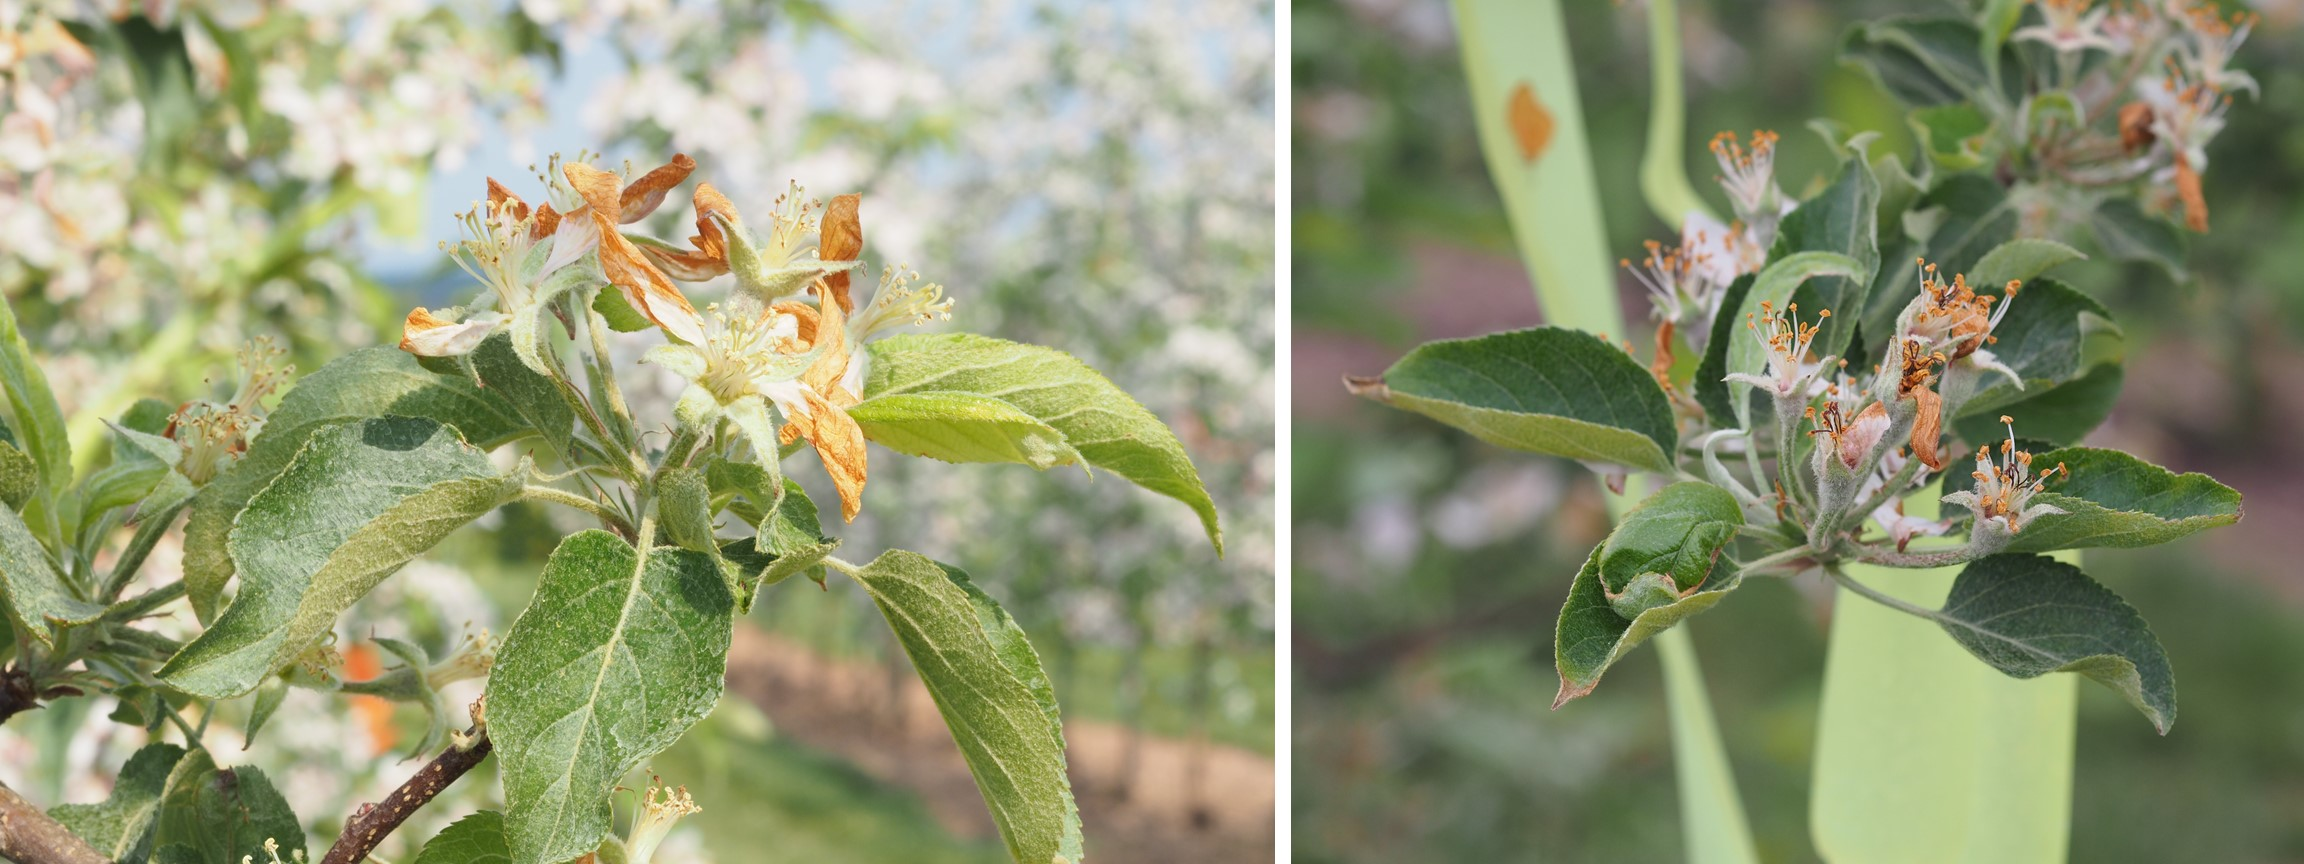 Figure 2. Petal browning (left) and leaf damage (right) can occur after LS applications.